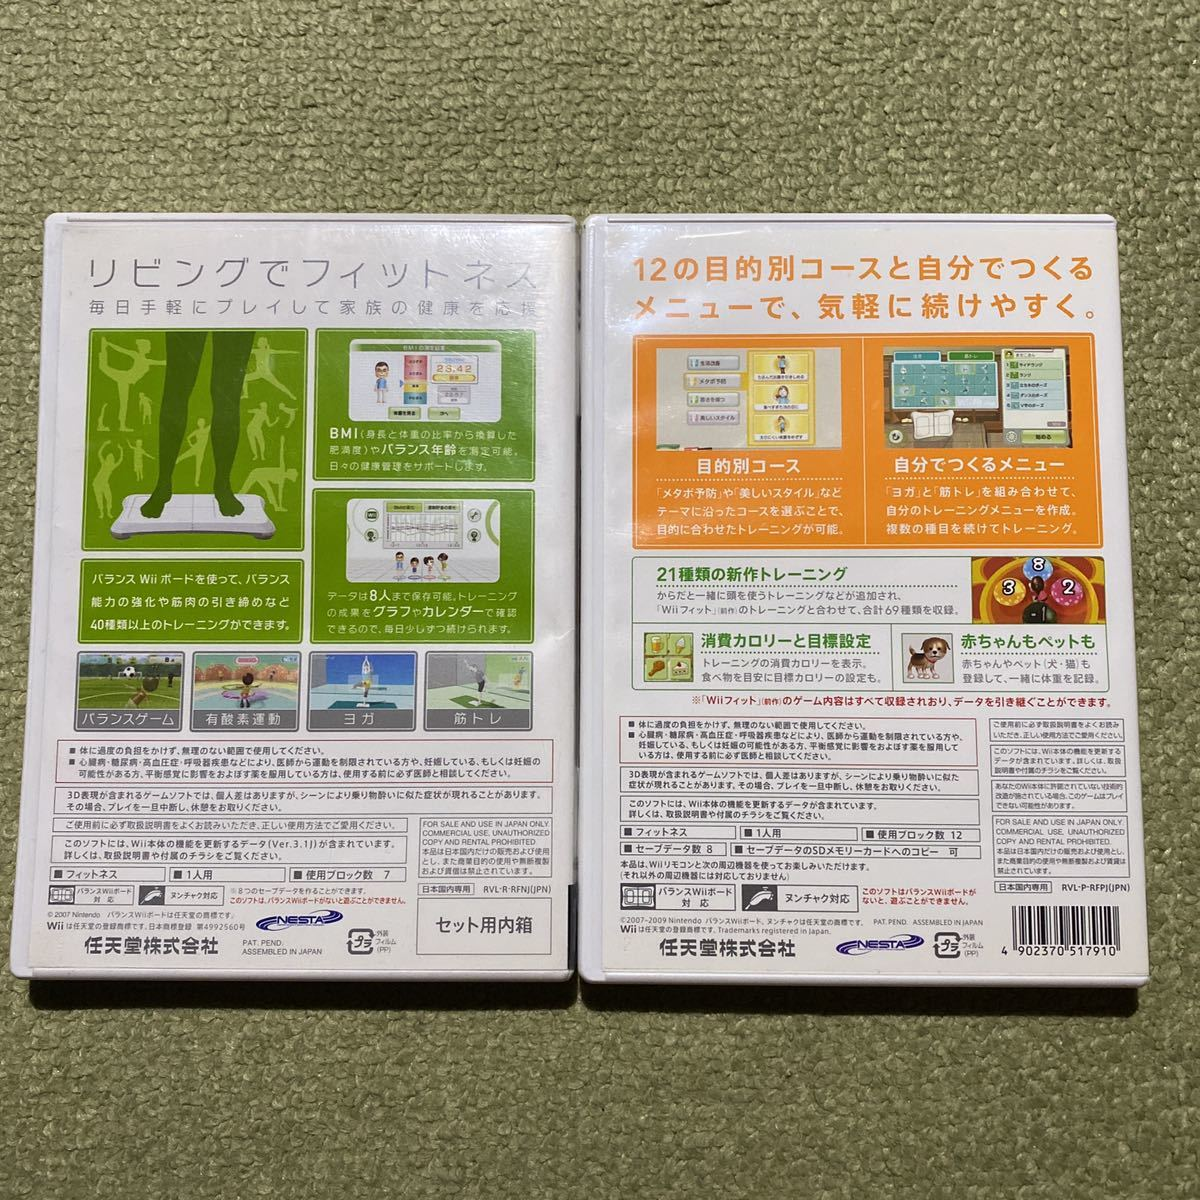 Wii Fit Wii Fit Plus 2本セット 即決